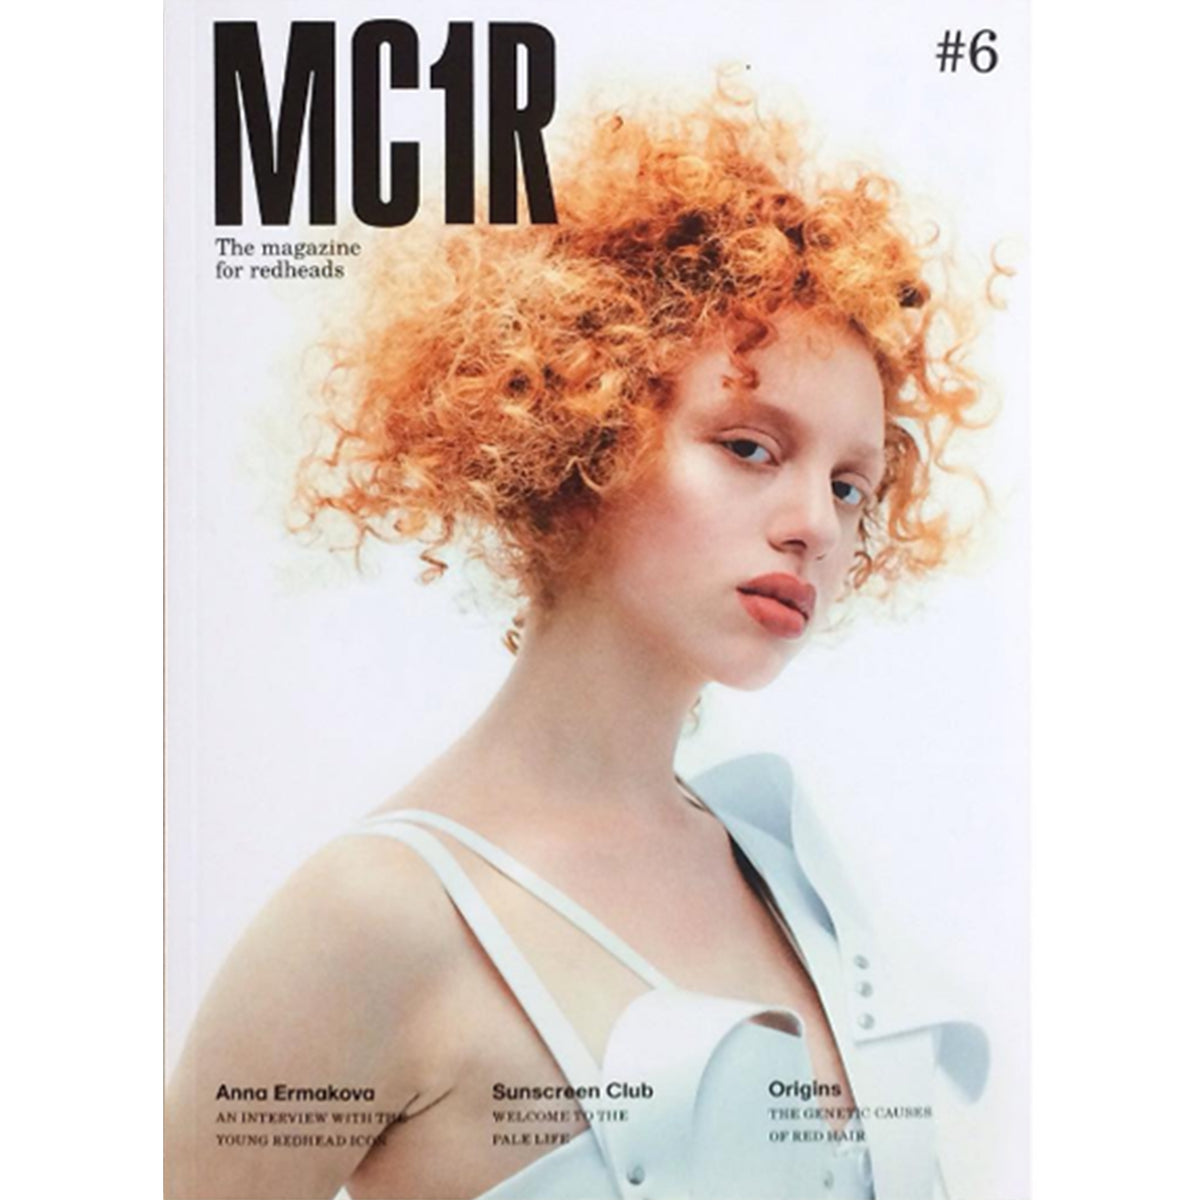 MC1R Magazine cover featuring Jivomir Domoustchiev white vinyl dress